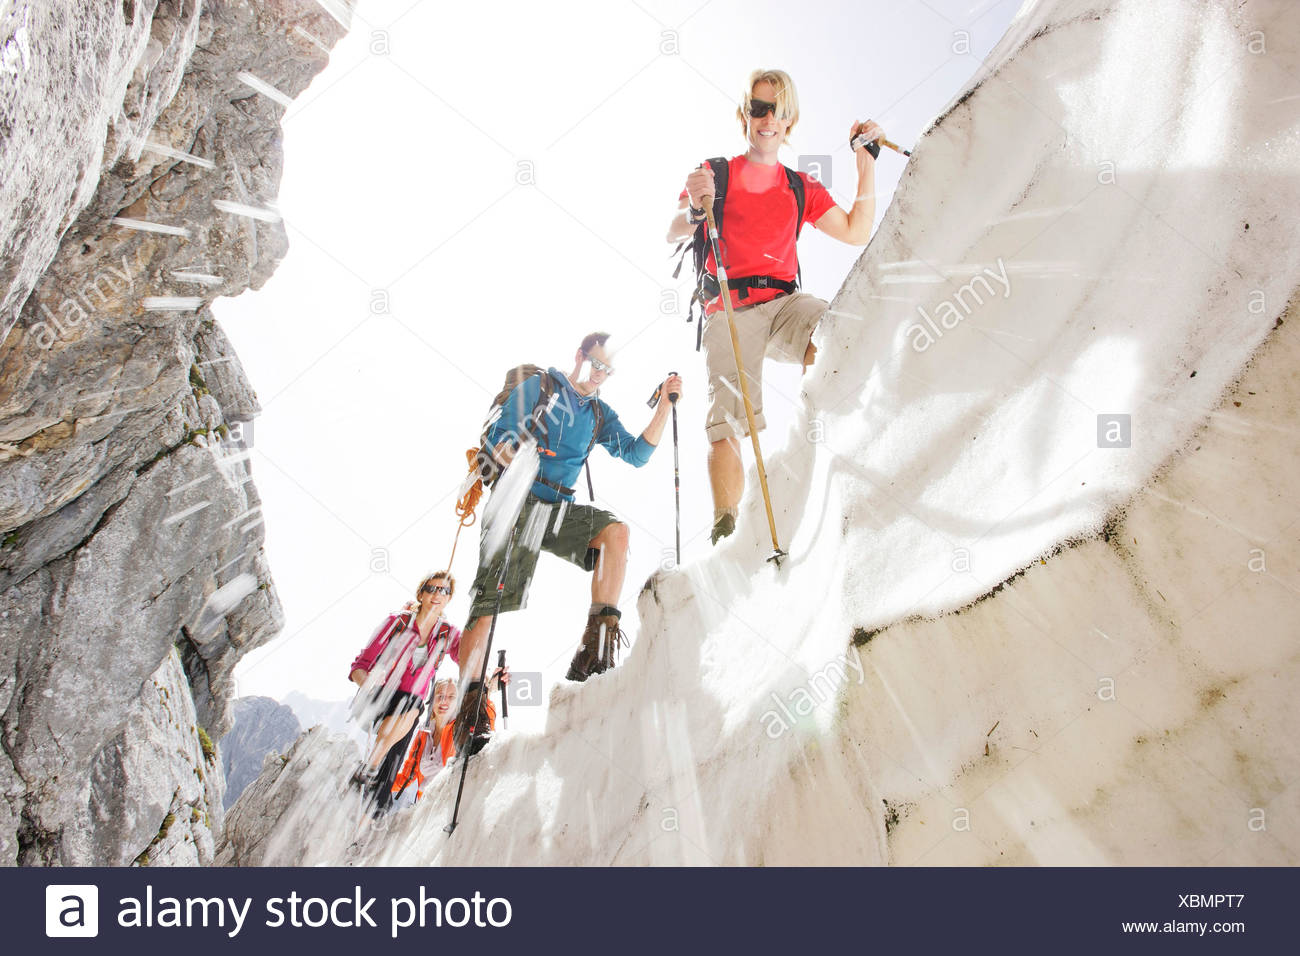 Hikers on cornice, Werdenfelser Land, Bavaria, Germany - Stock Image